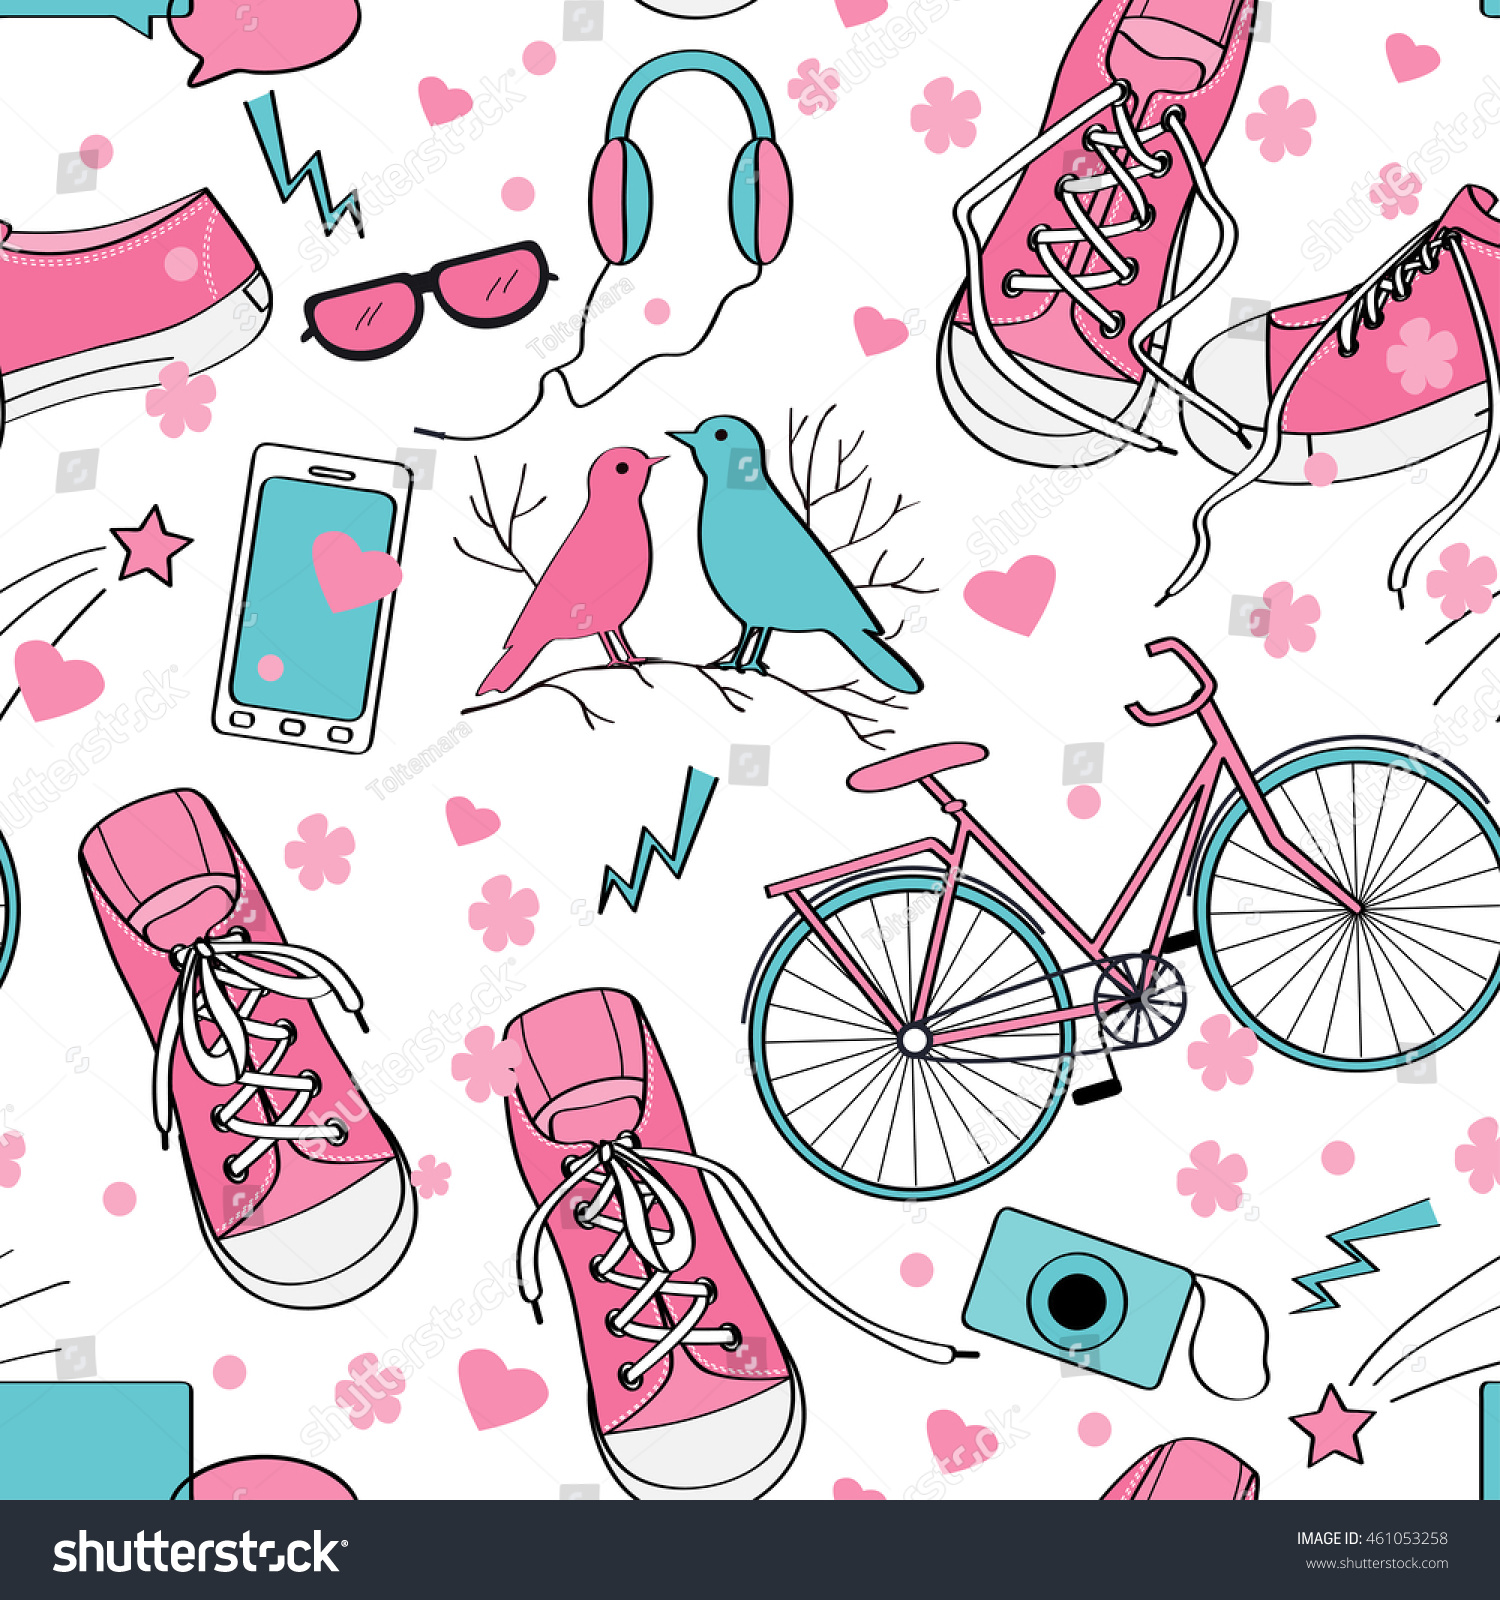 Cute Teenager Girls Pattern With Sneakers Birds Couple Bike Camera Mobile Telephone